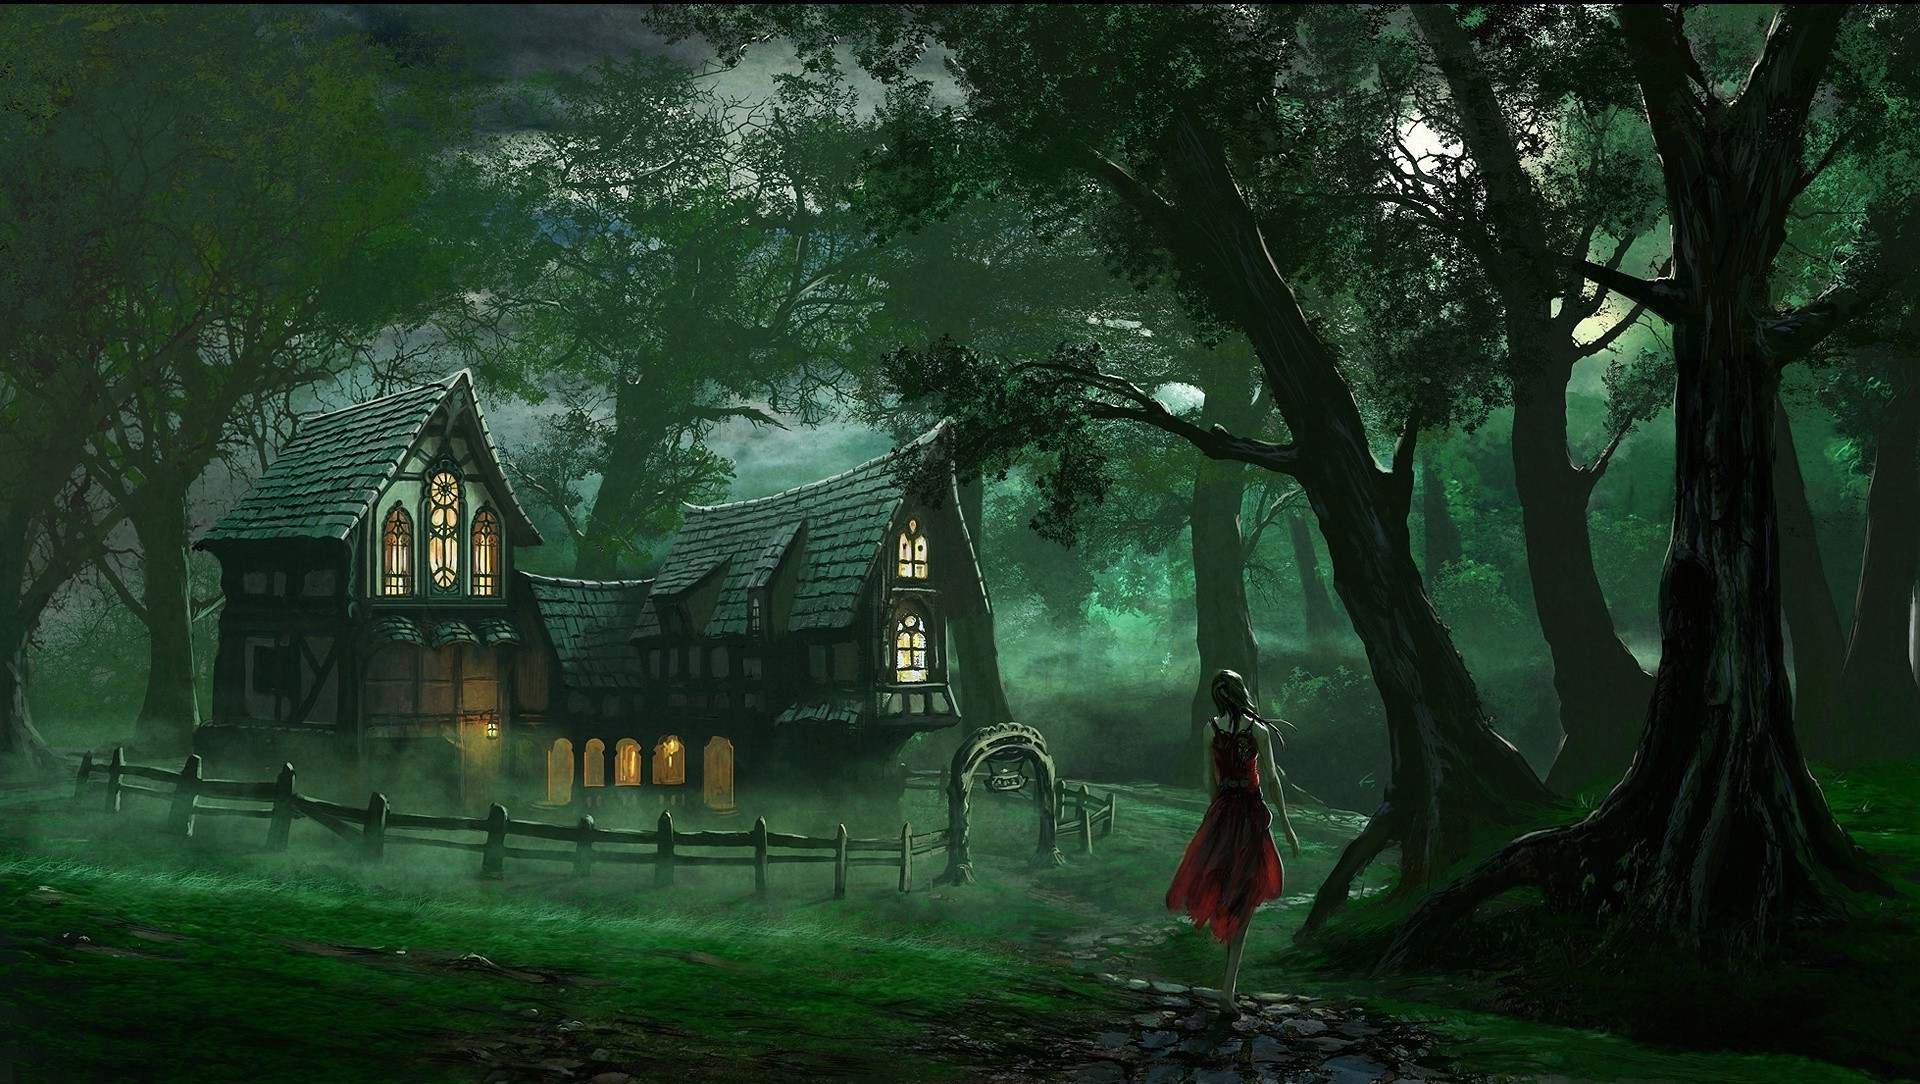 Fabulous house in night forest